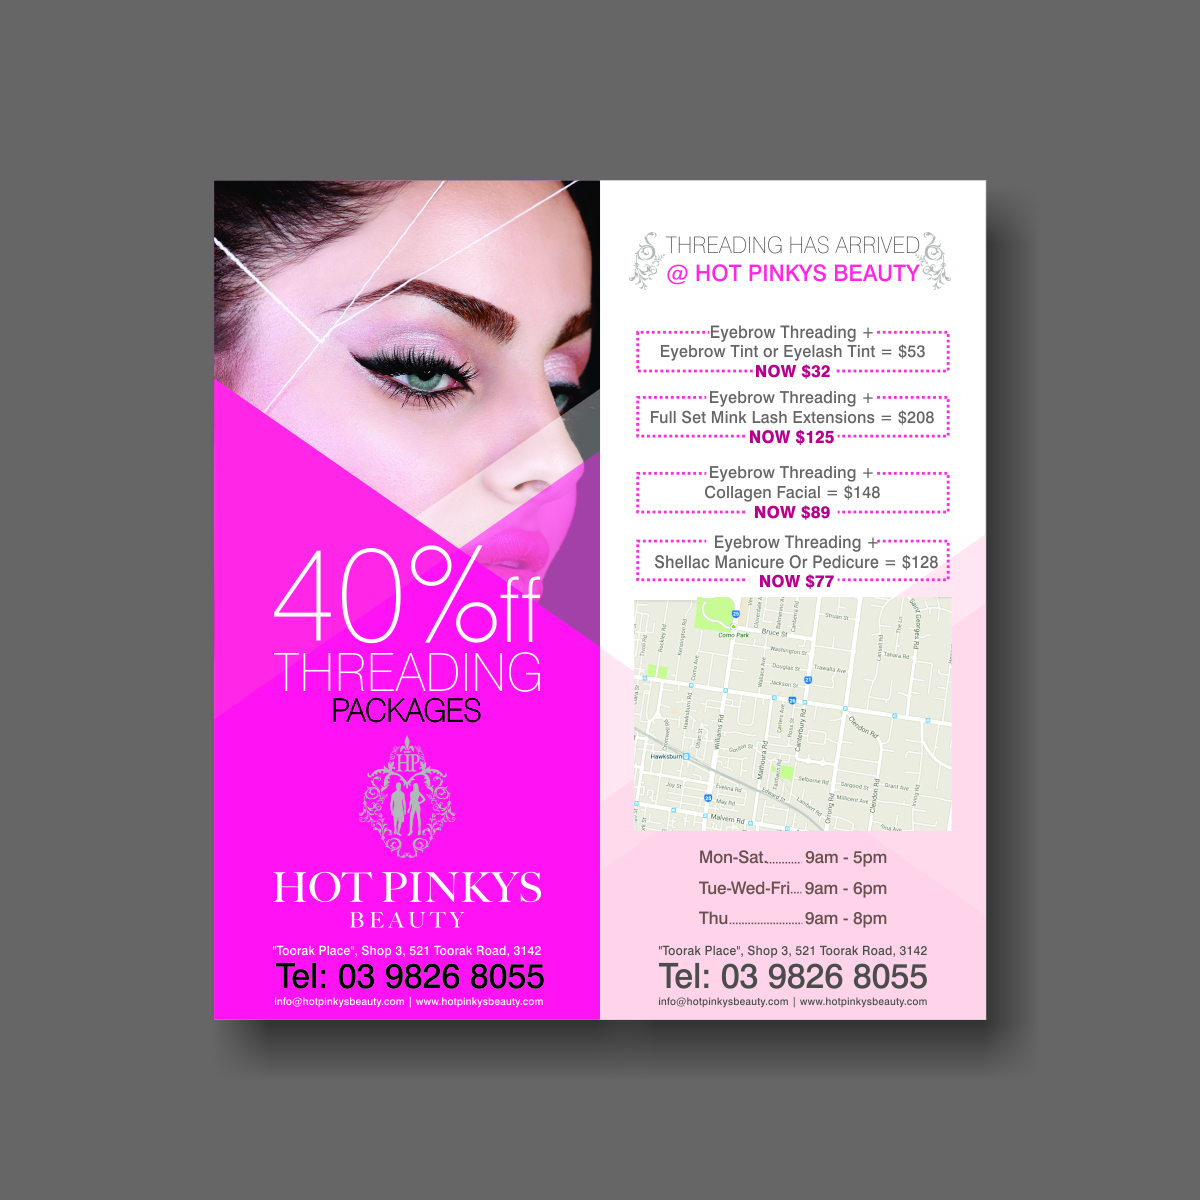 "Eyebrow Threading Flyer Design""  17 Flyer Designs for Hot Pinkys"